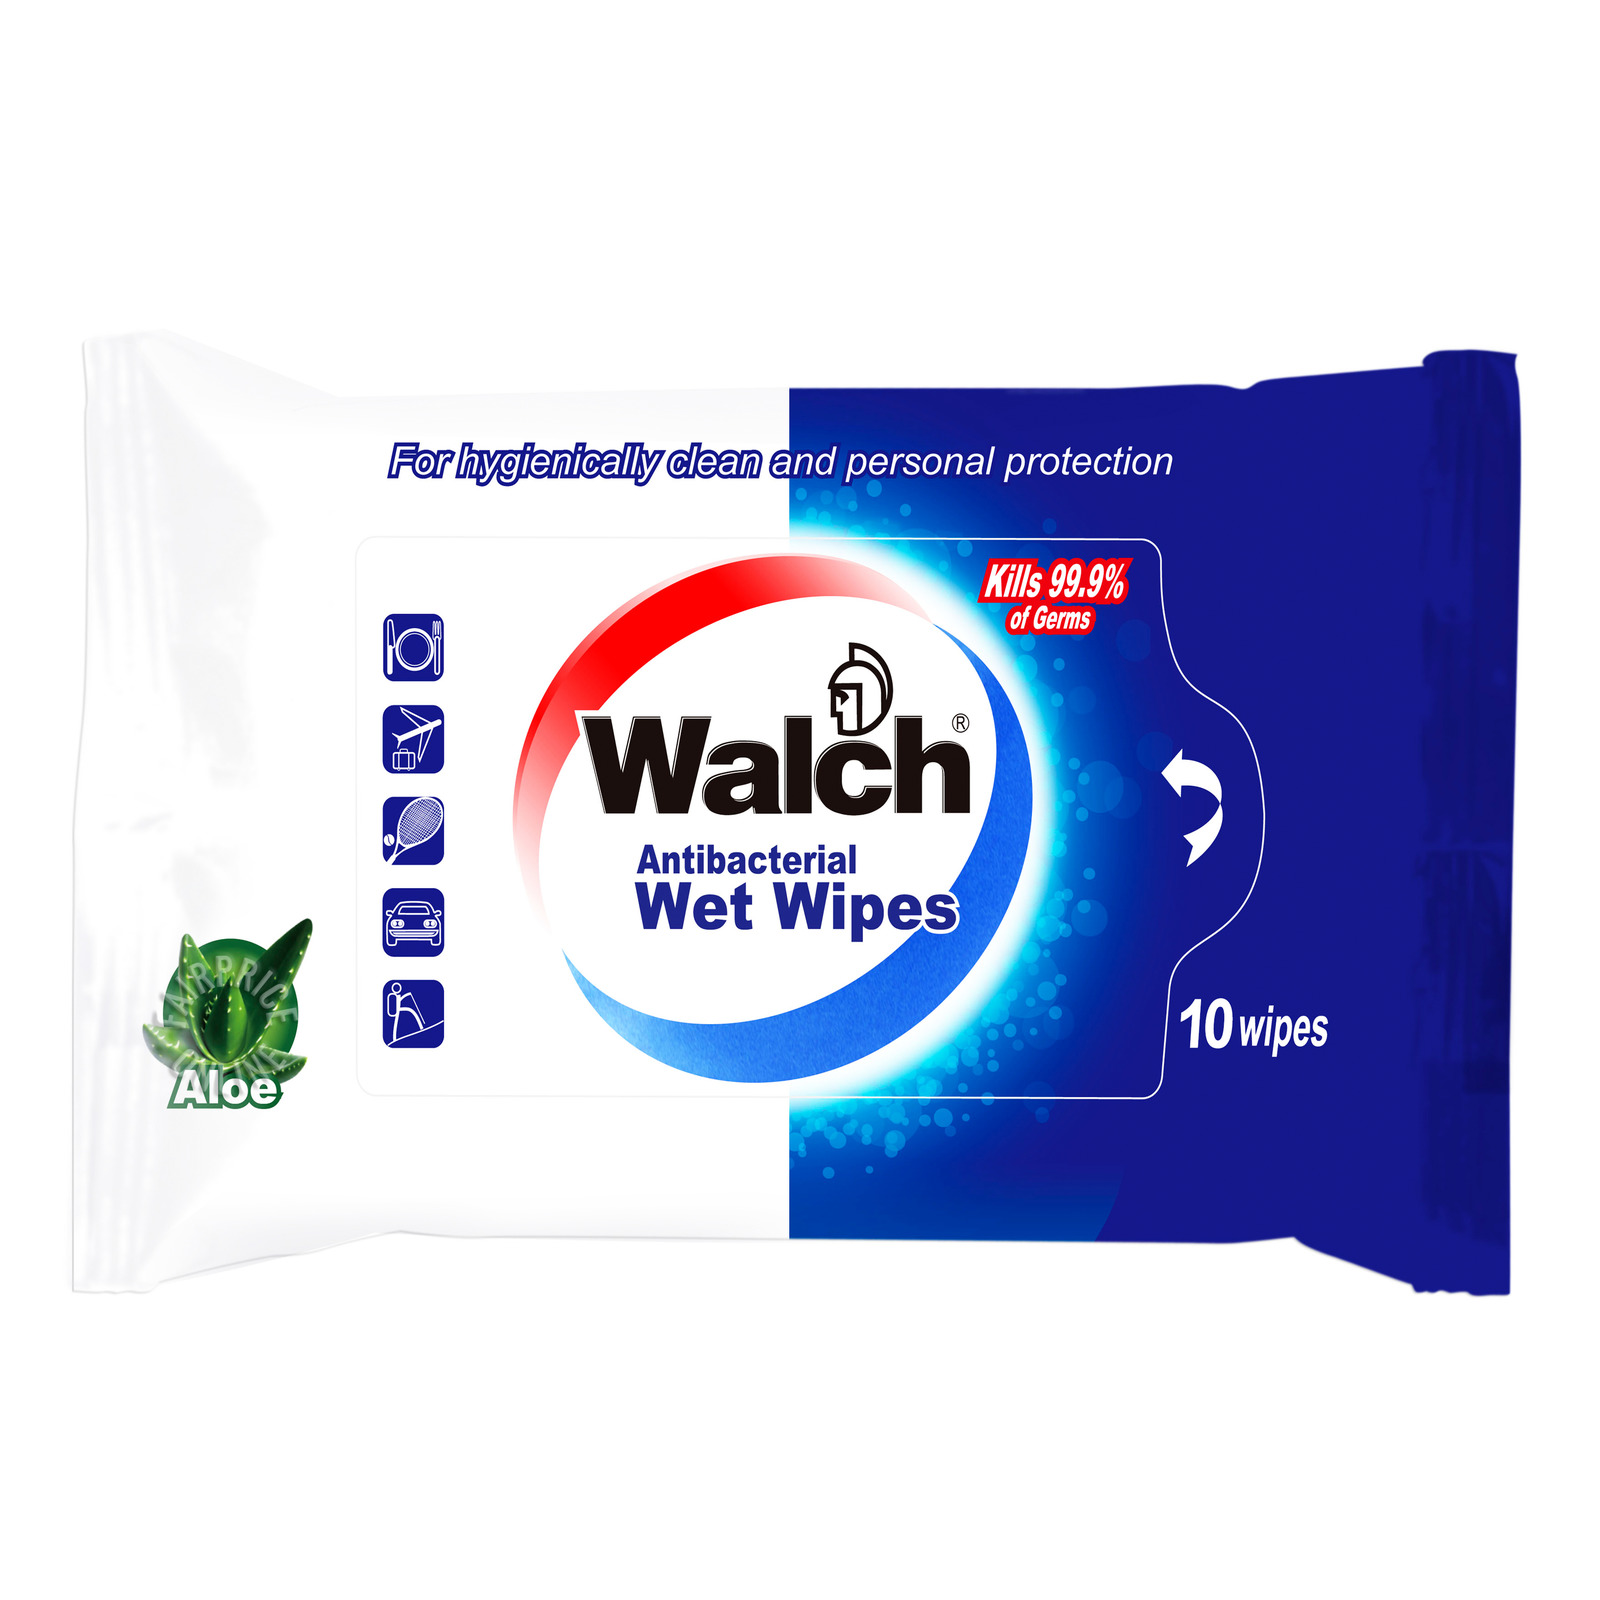 Walch Antibacterial Wet Wipes